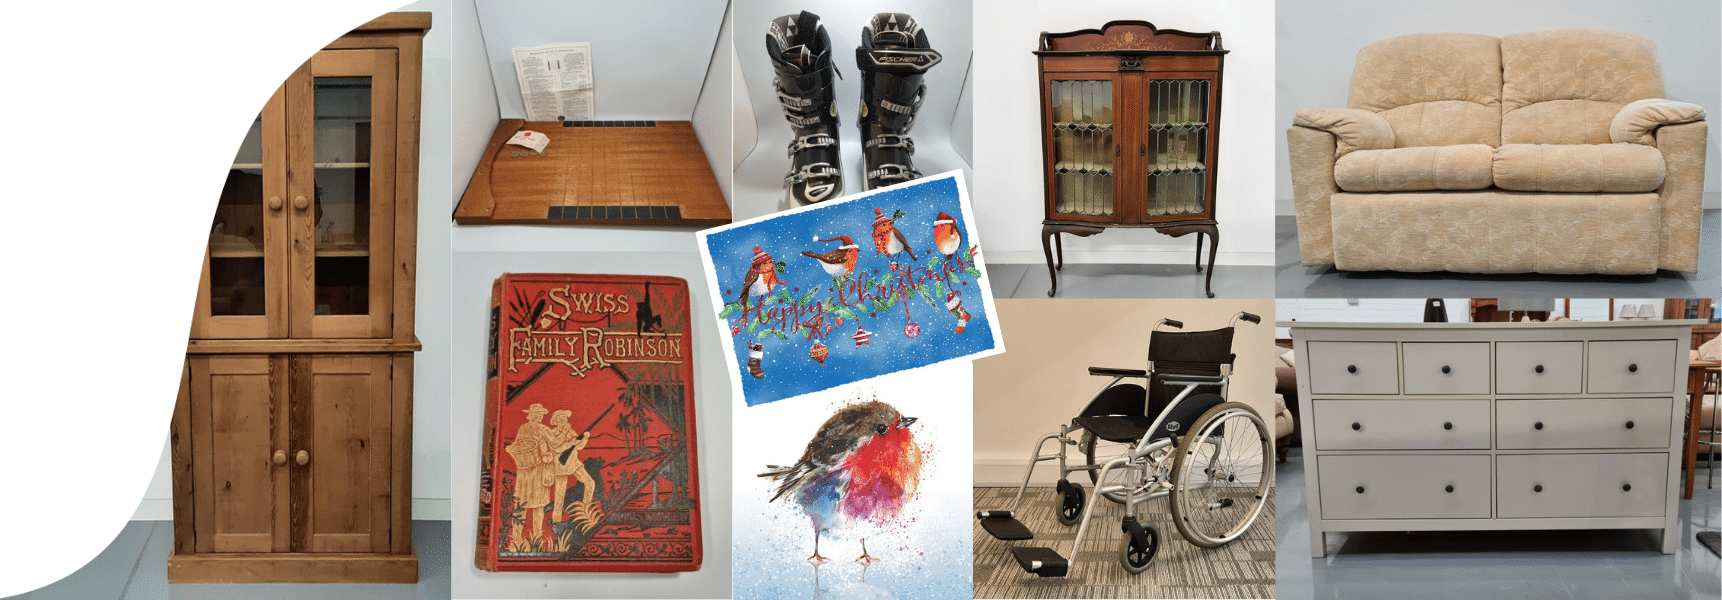 Furniture, books, mobility aids, games, Christmas cards